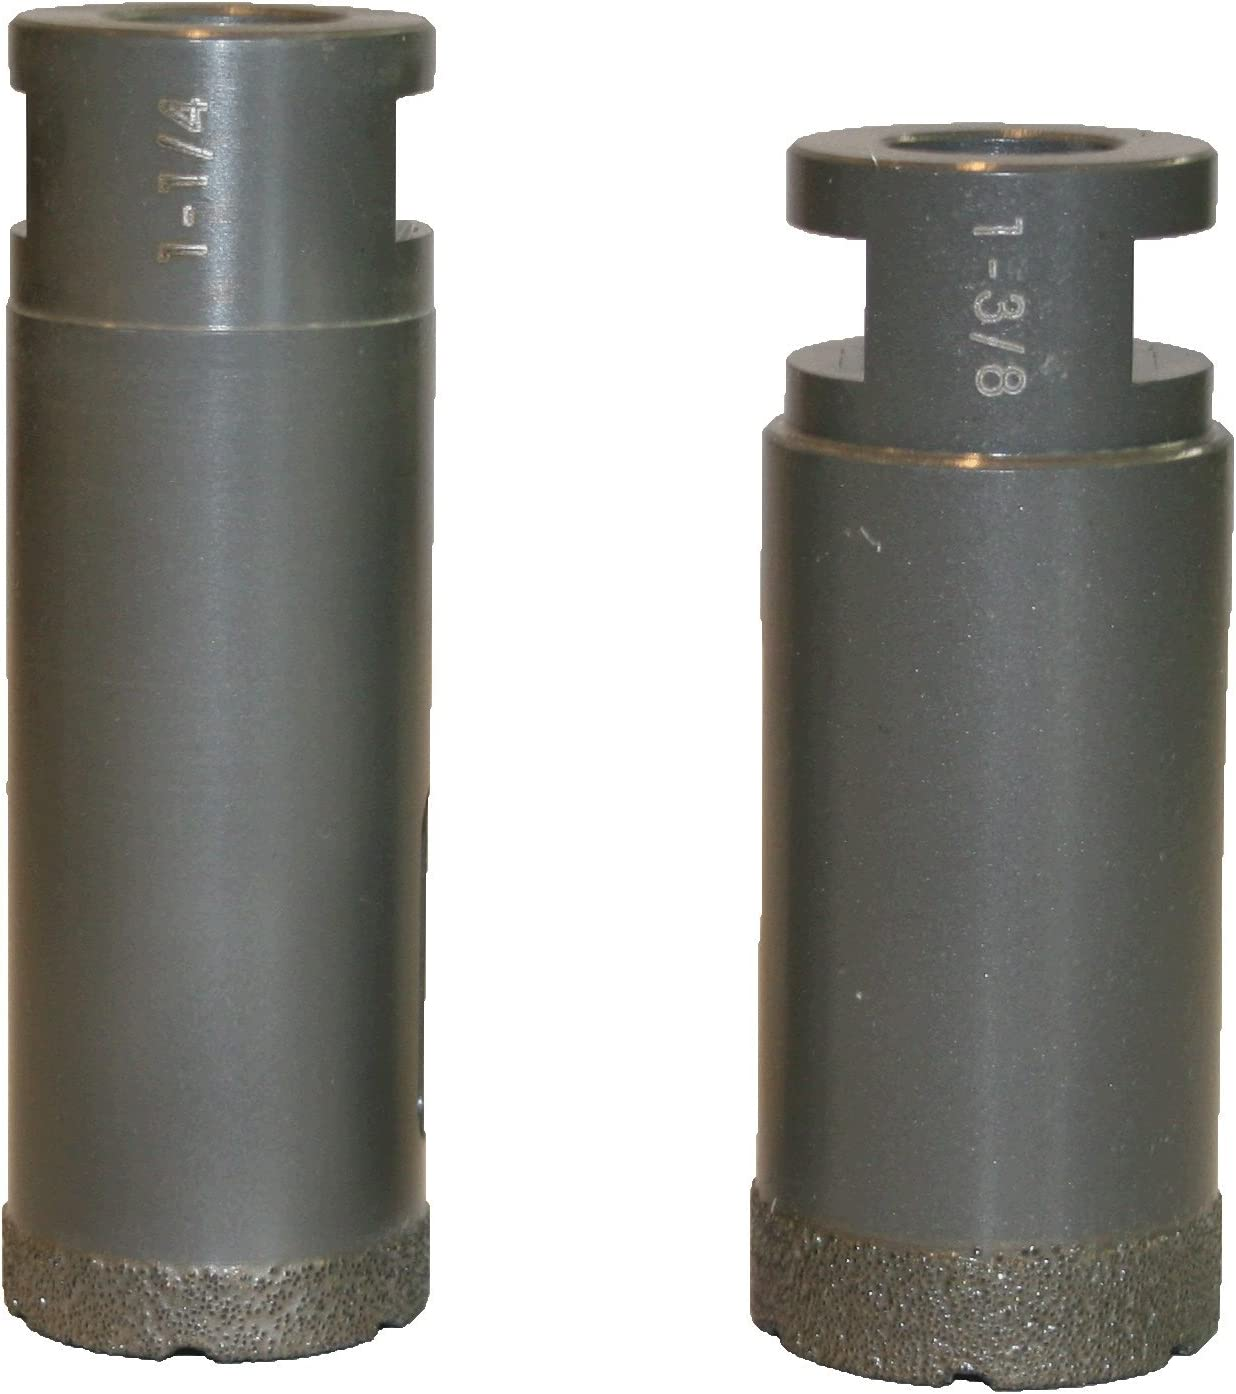 Number of Flutes: 2 DMM Micro 100 Drill Mill DMM-030-290 8.00mm Length of Cut Uncoated 3.00mm Milling Dia